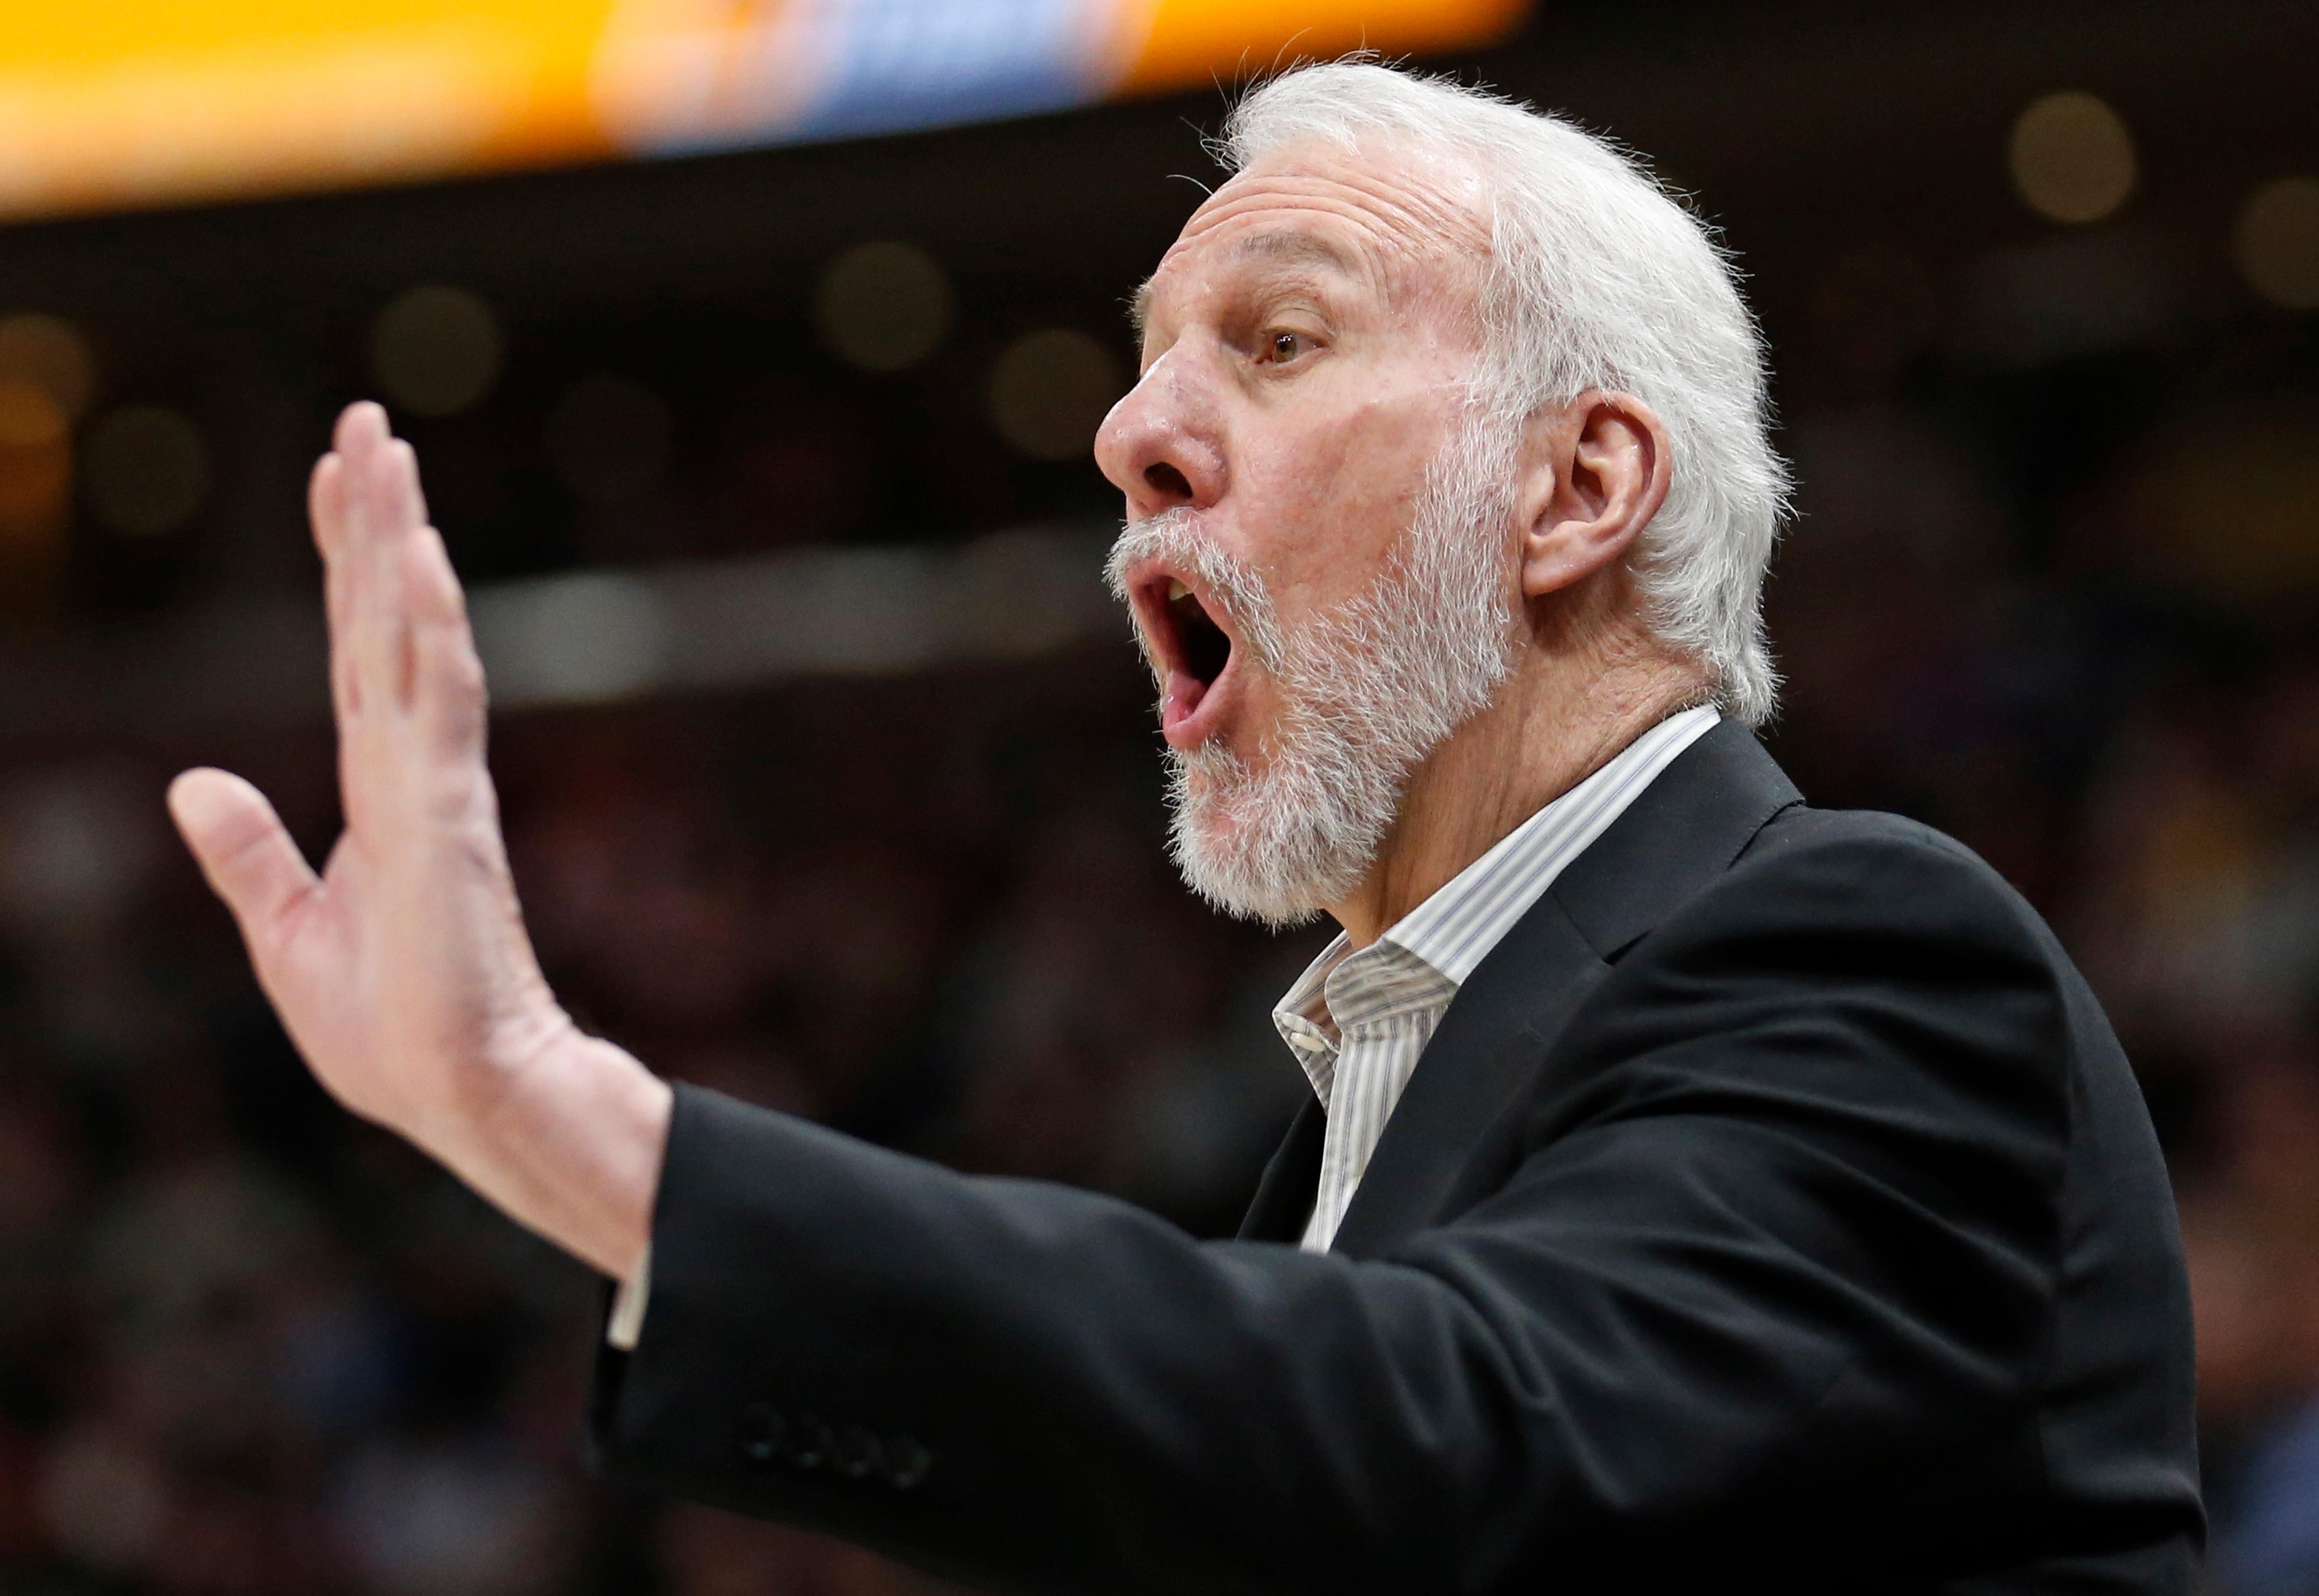 San Antonio Spurs head coach Gregg Popovich shouts to his team in the first half of an NBA basketball game against the Utah Jazz Monday, Feb. 12, 2018, in Salt Lake City. (AP Photo/Rick Bowmer)